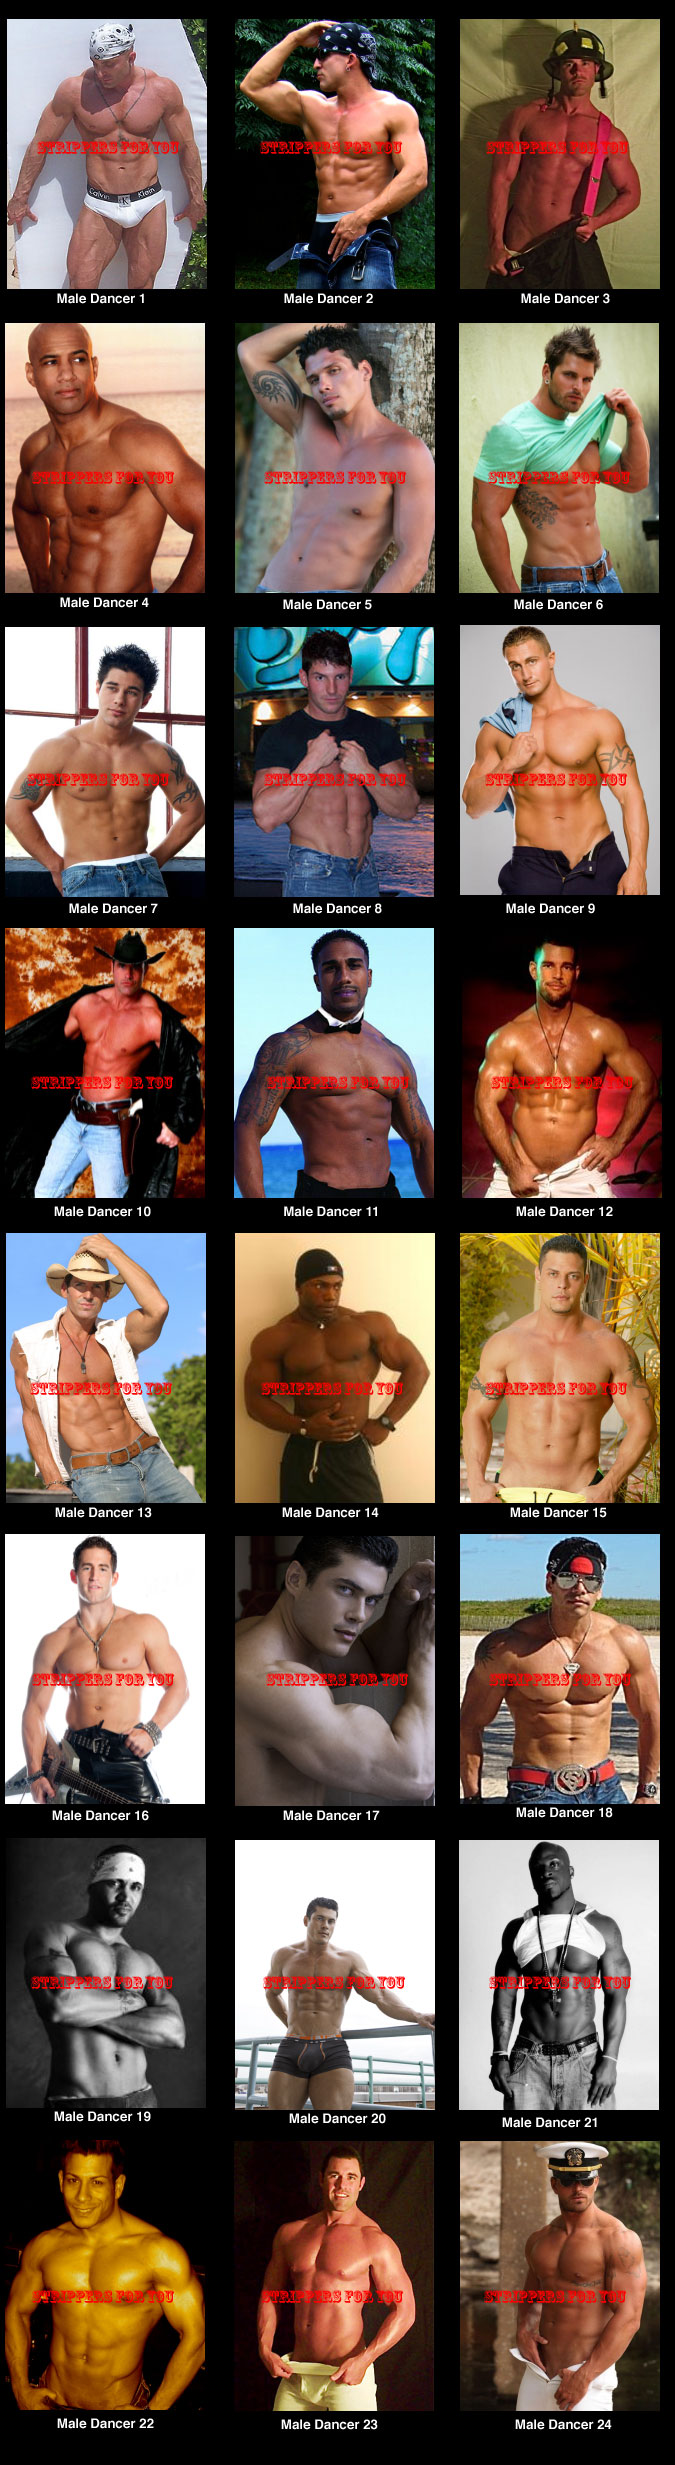 Fresno male strippers